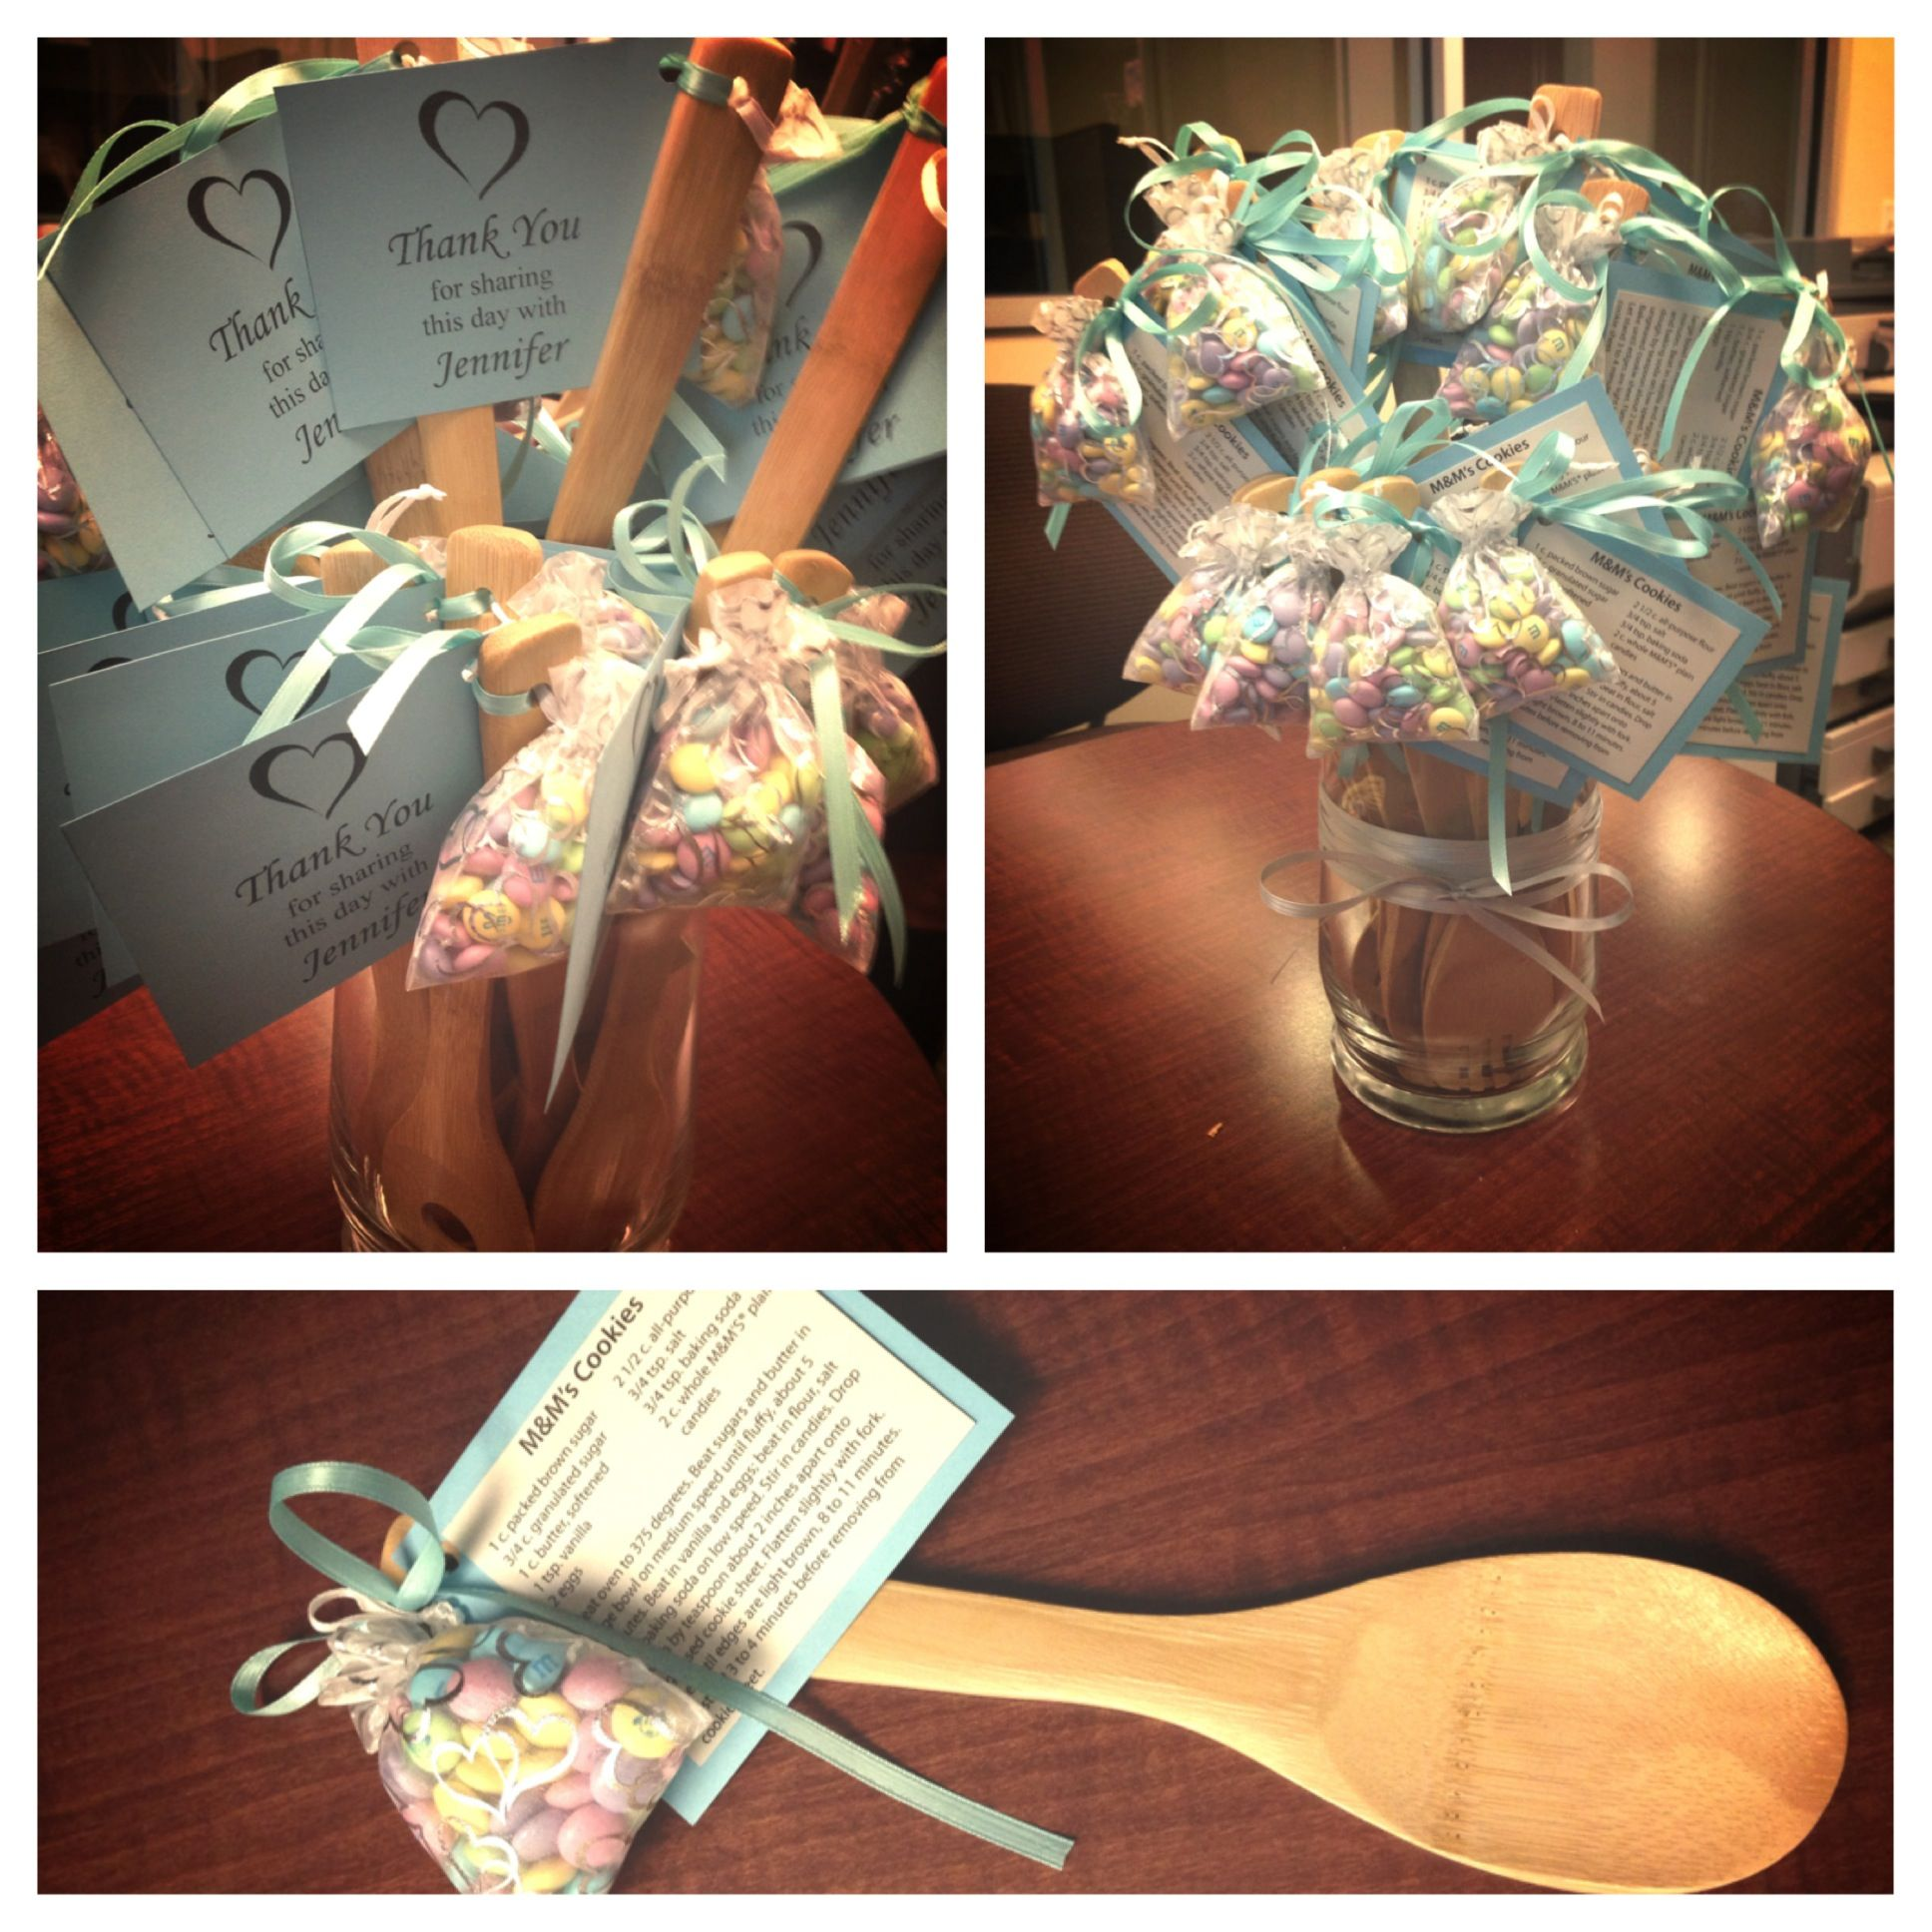 bridal shower favors for cooking theme wooden spoons with ms and recipe tag personalized for the bride to be